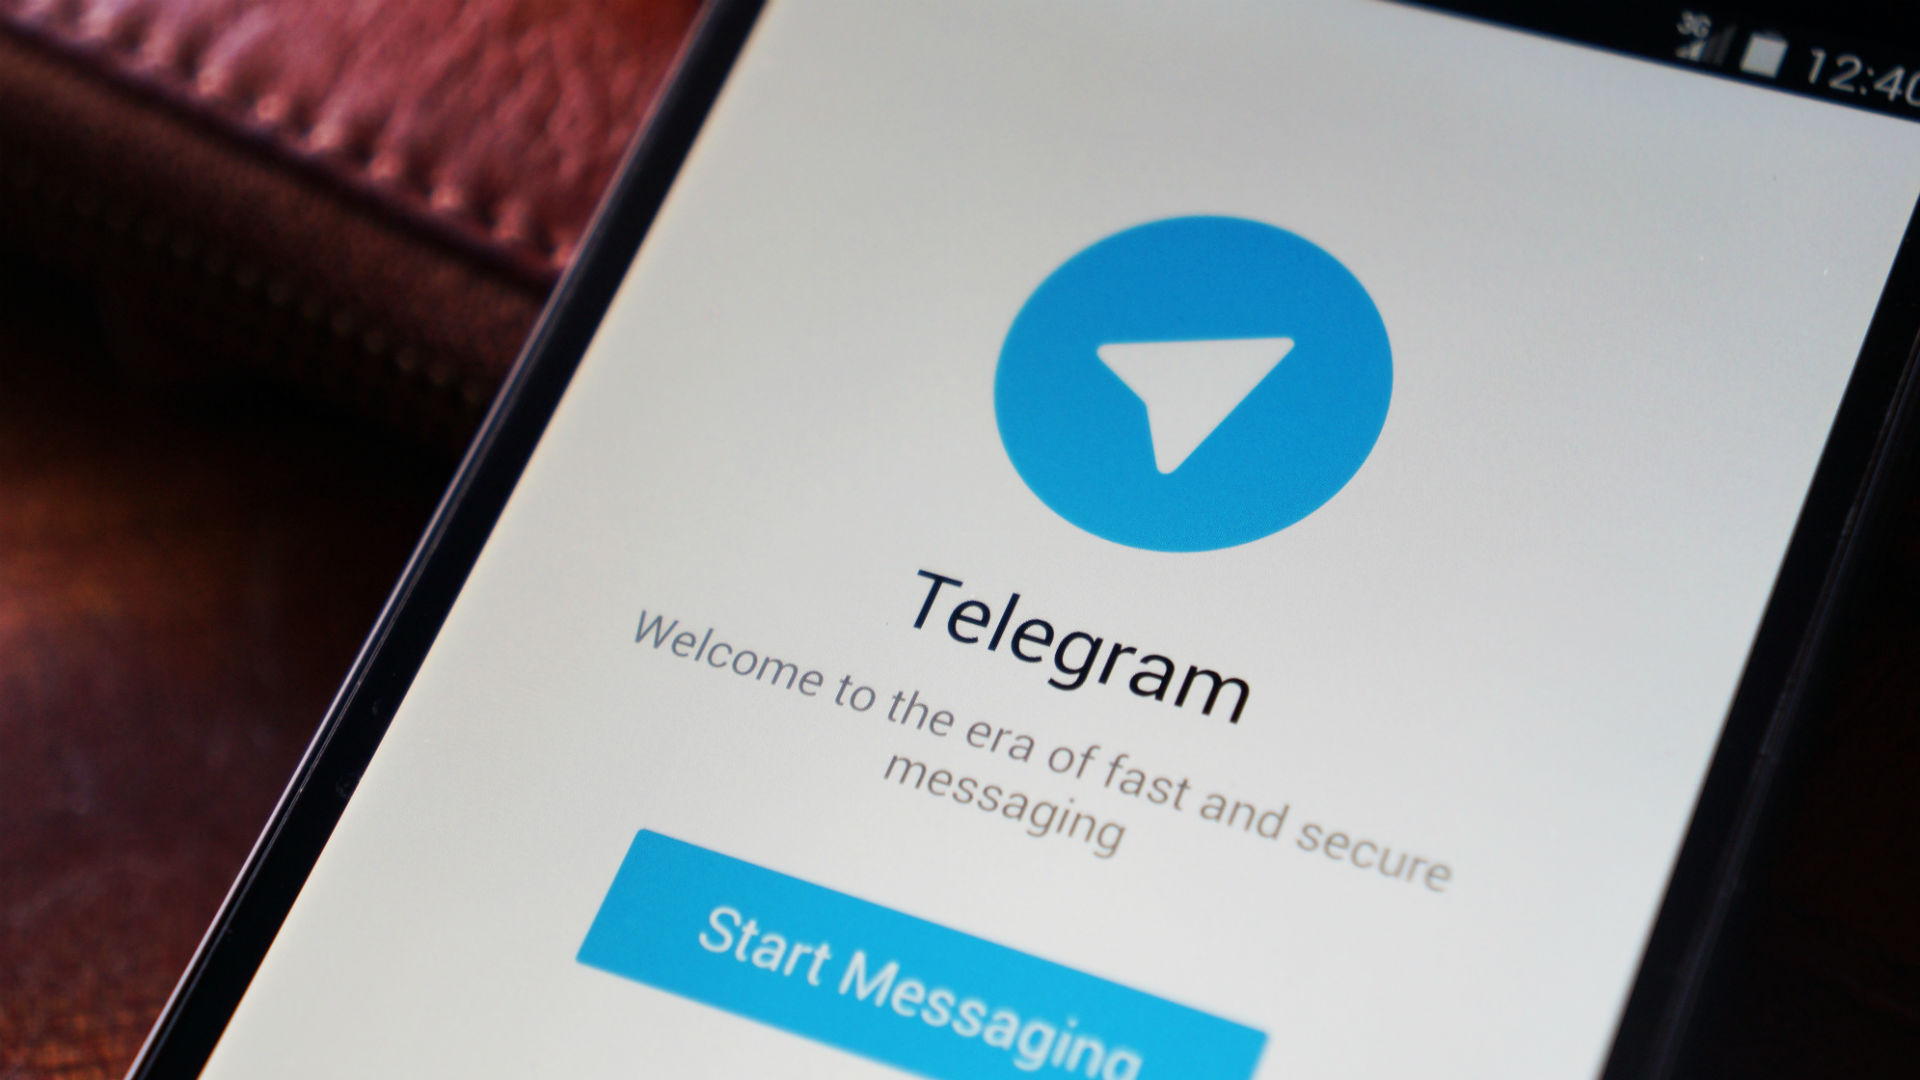 Telegram plans Dollars 500m ICO for chat cryptocurrency